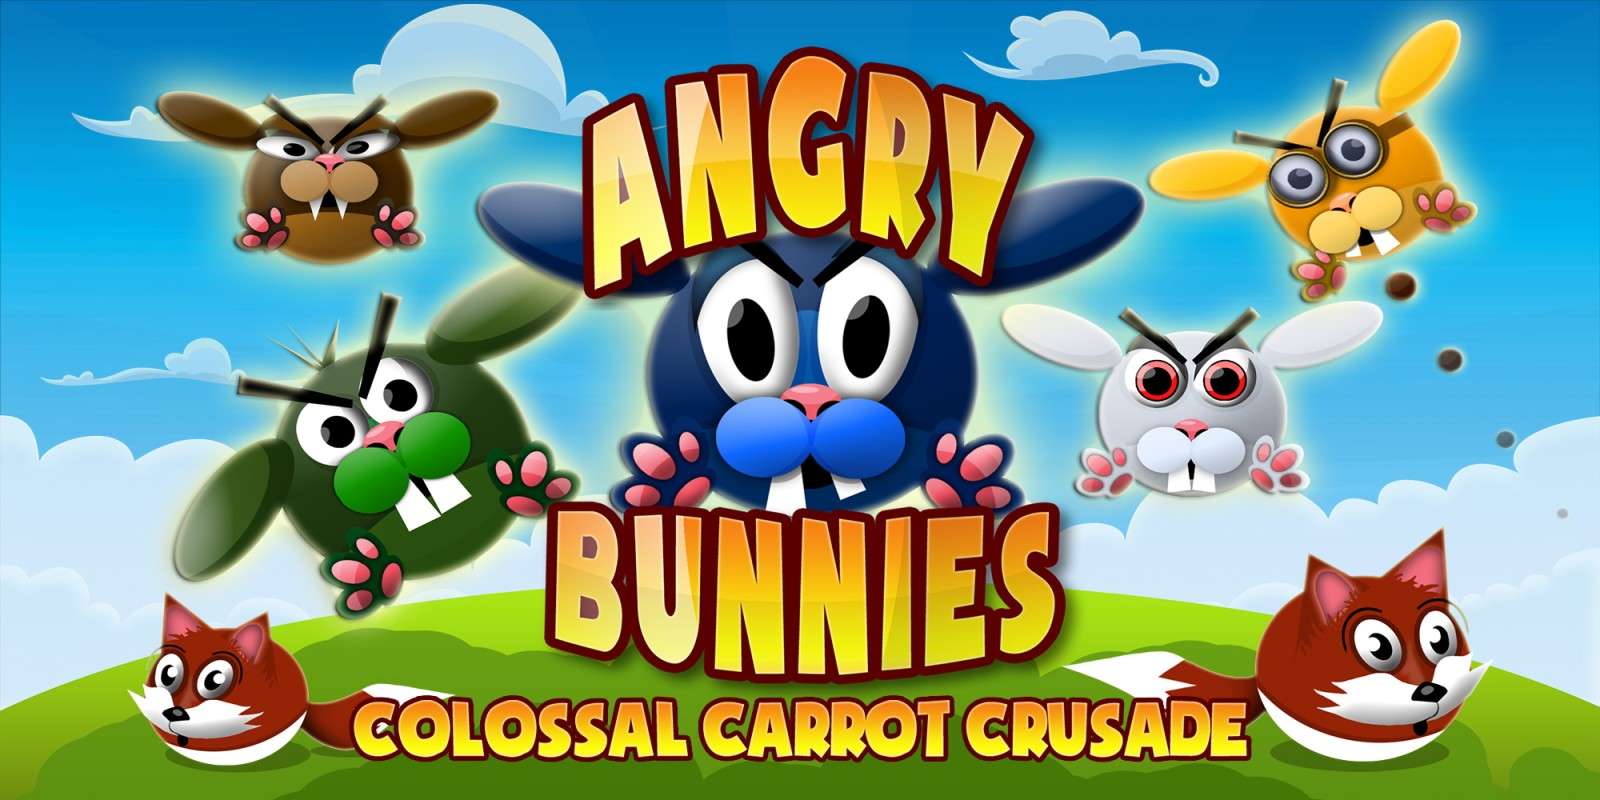 H2x1_NSwitchDS_AngryBunniesColossalCarrotCrusade_image1600w